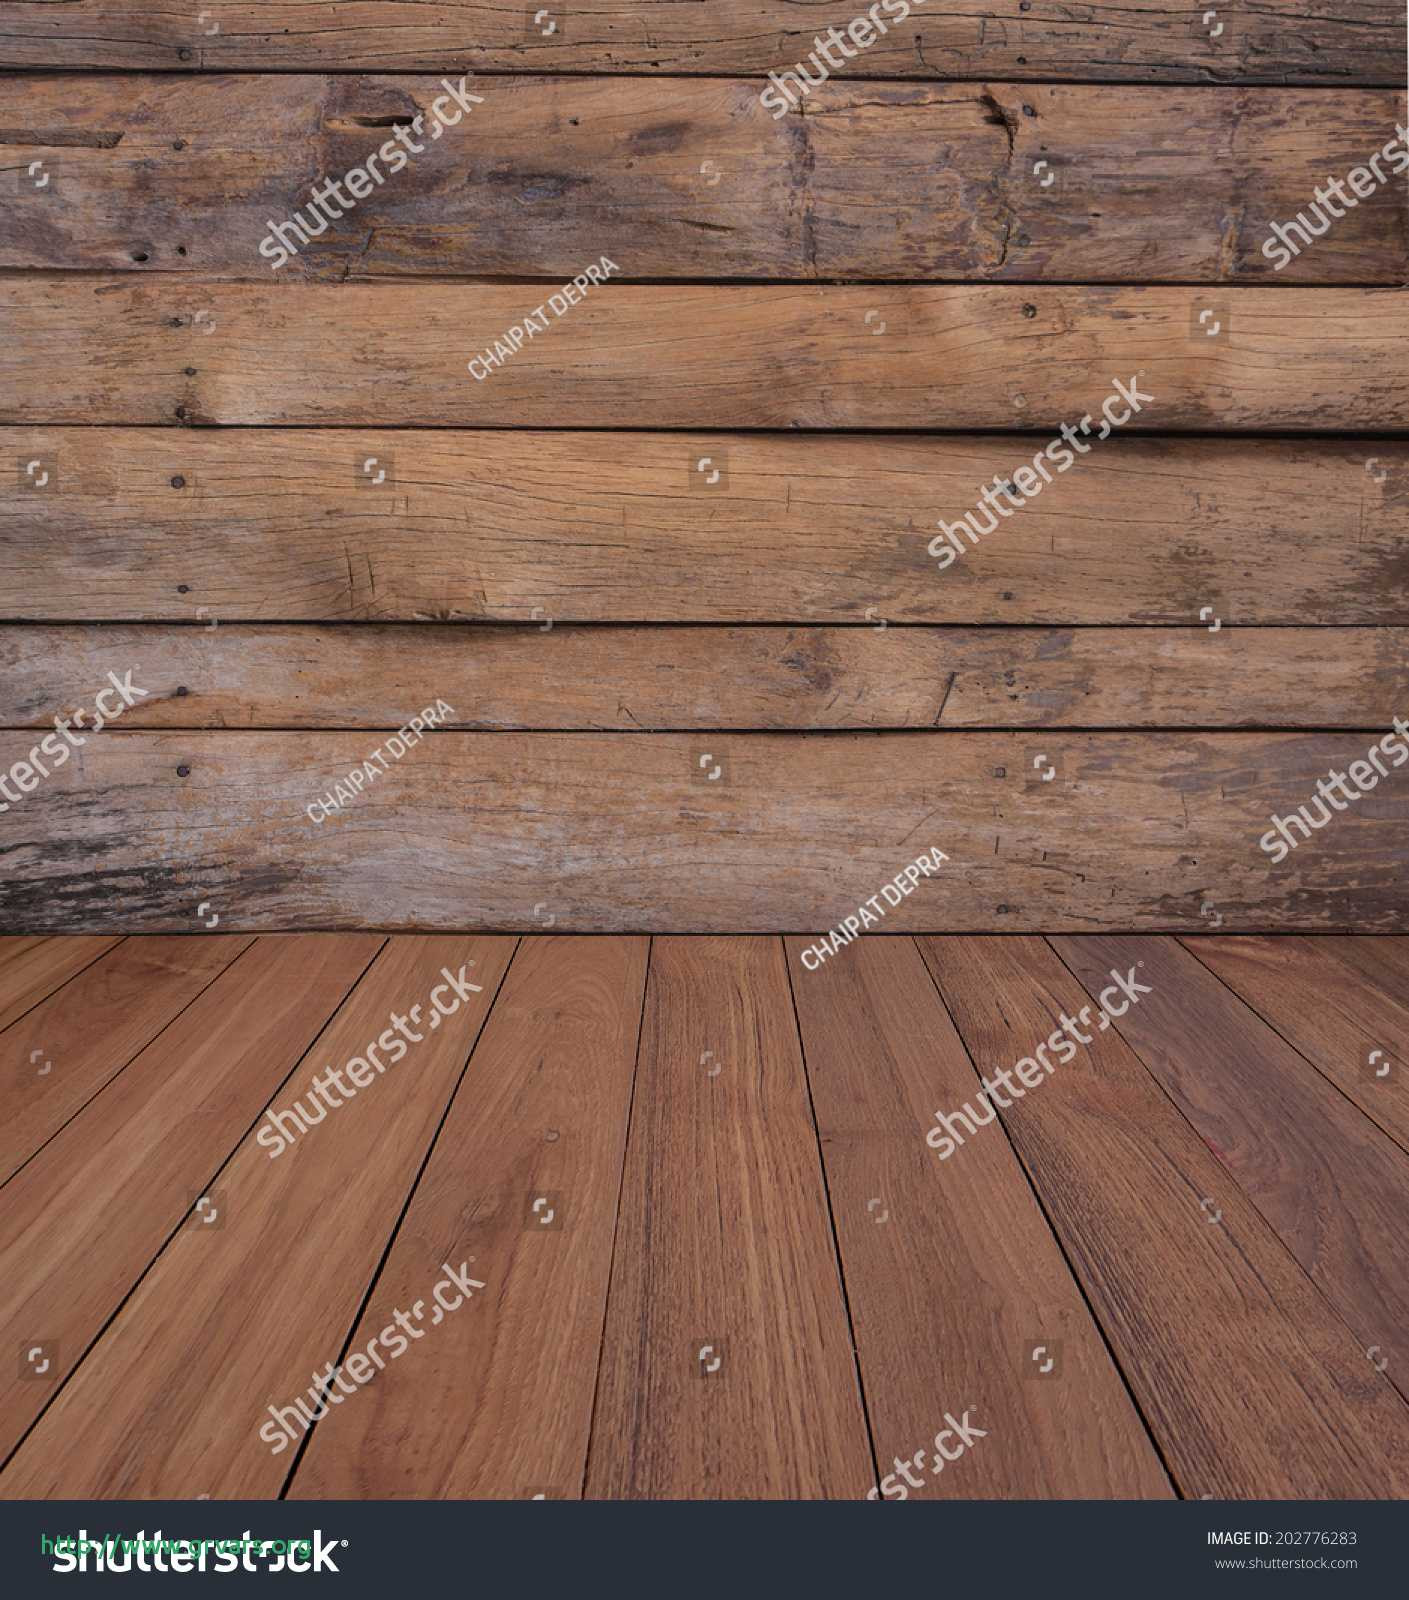 hardwood floor repair toronto of how to lay out wood flooring a‰lagant 3 4 x 4 3 4 solid golden teak regarding how to lay out wood flooring beau od wood wall wood floor stock royalty free